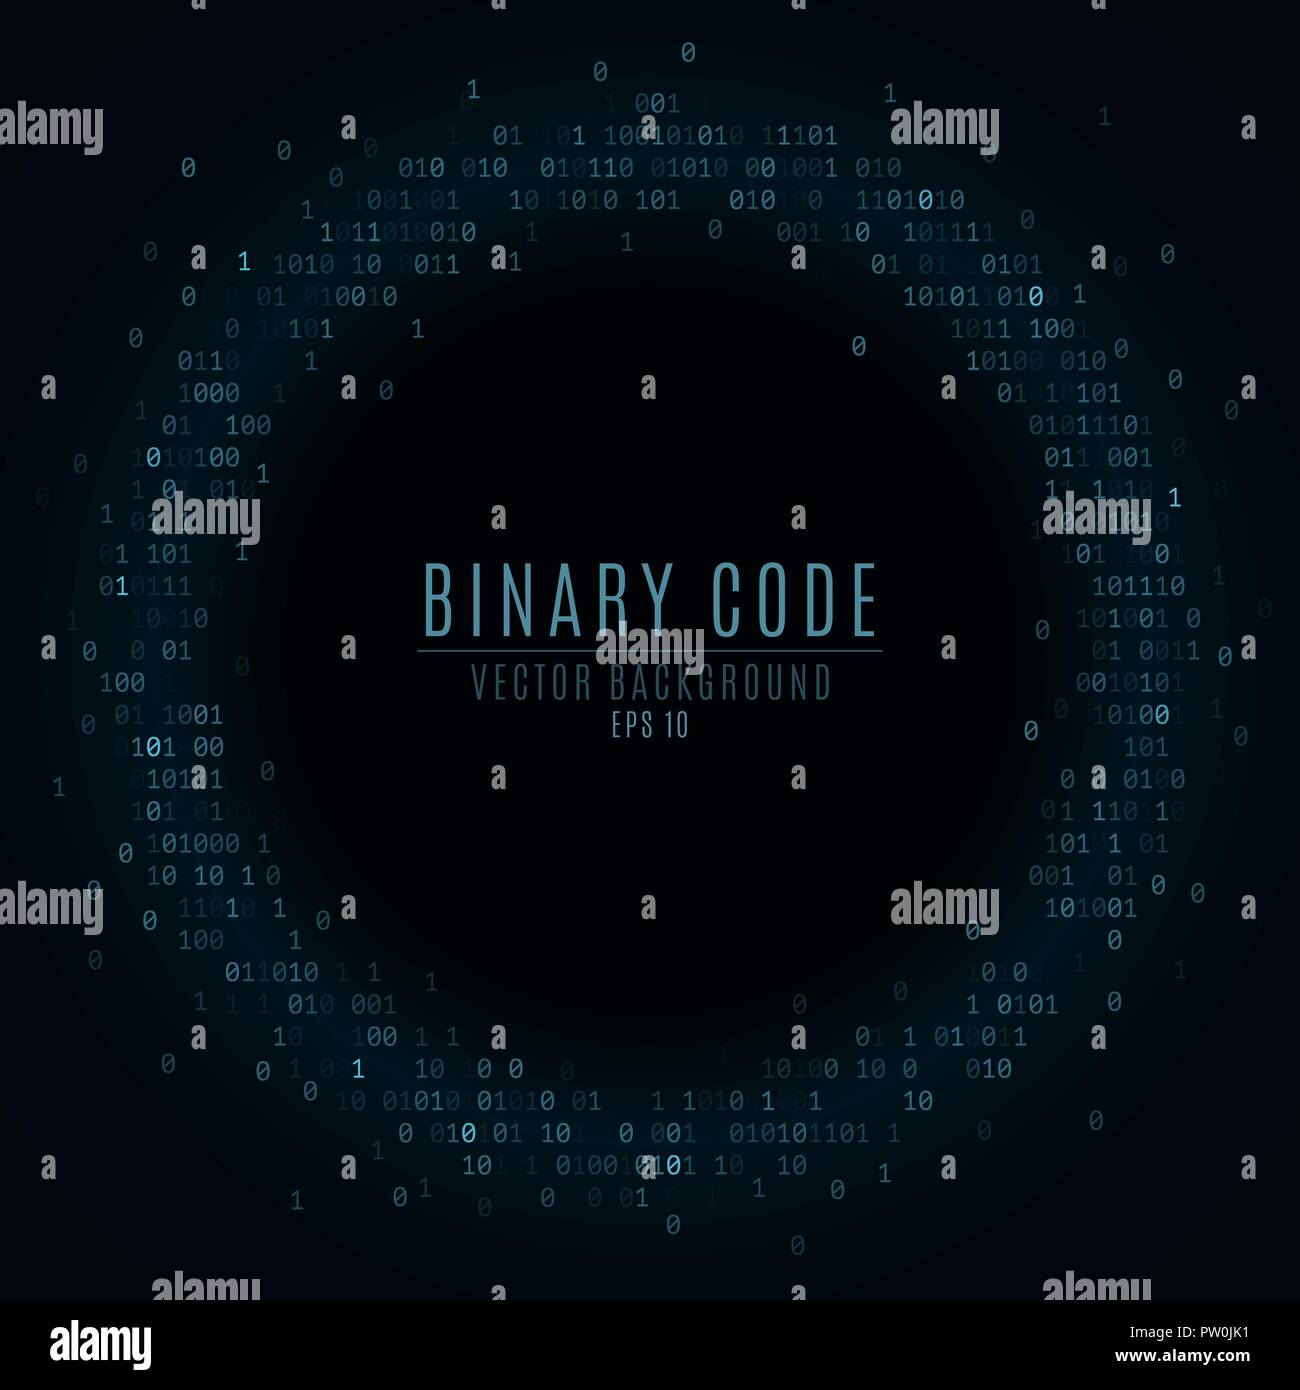 Binary code. Abstract banner. Falling blue glowing numbers. Global network. High technologies, programming, sci-fi. Hacking system. Vector illustratio - Stock Vector